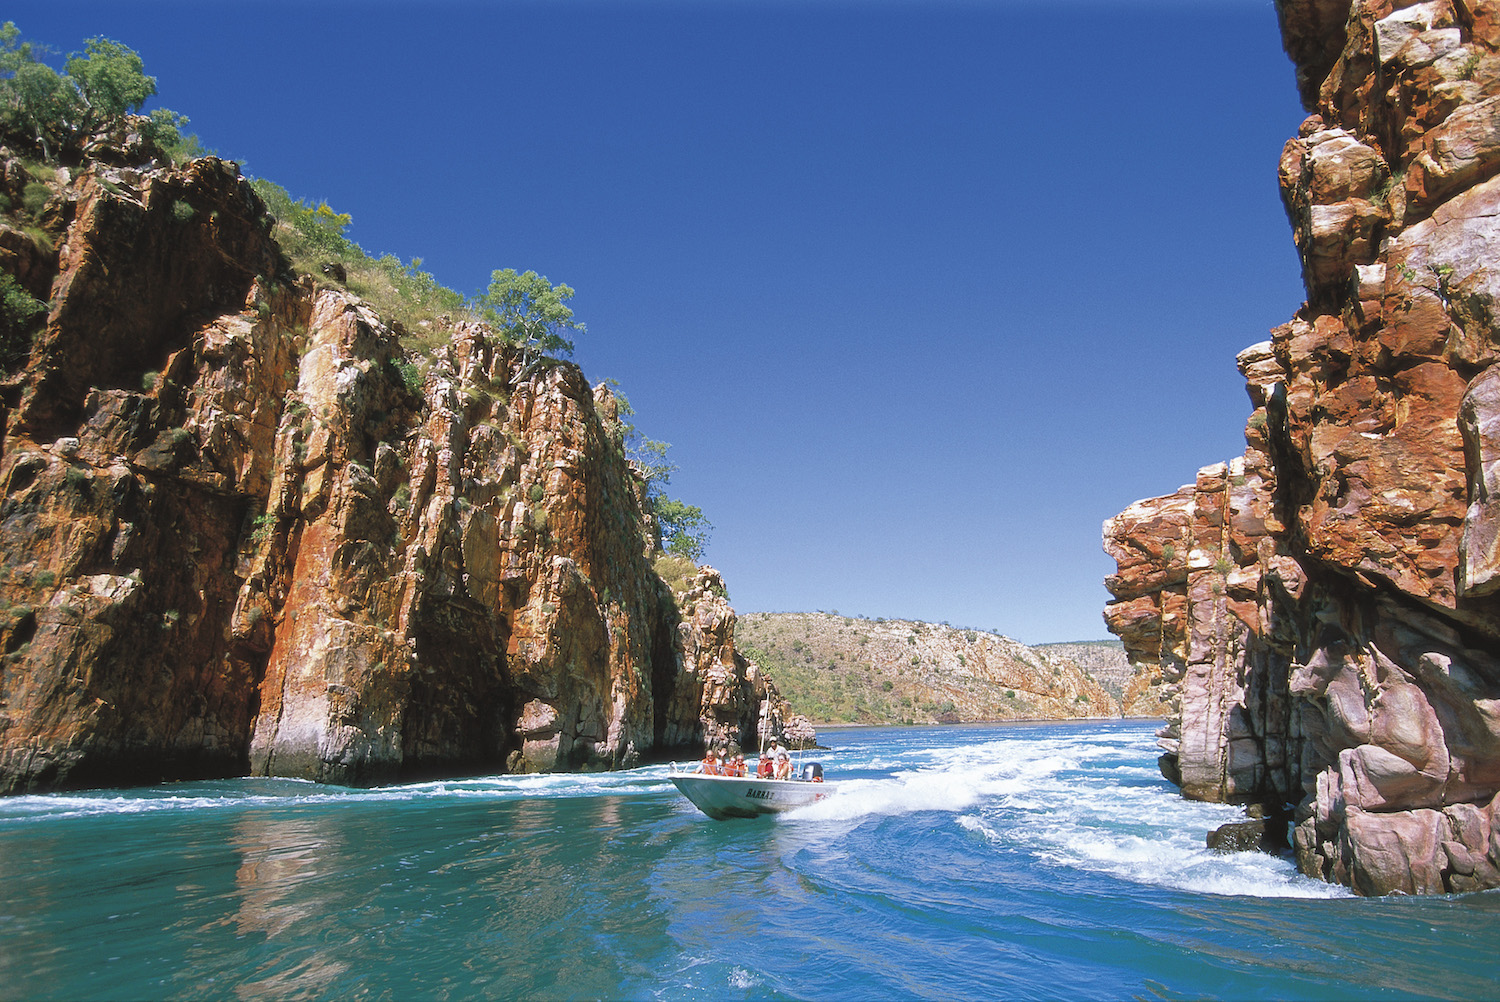 Horizontal Falls - Kimberly Coast